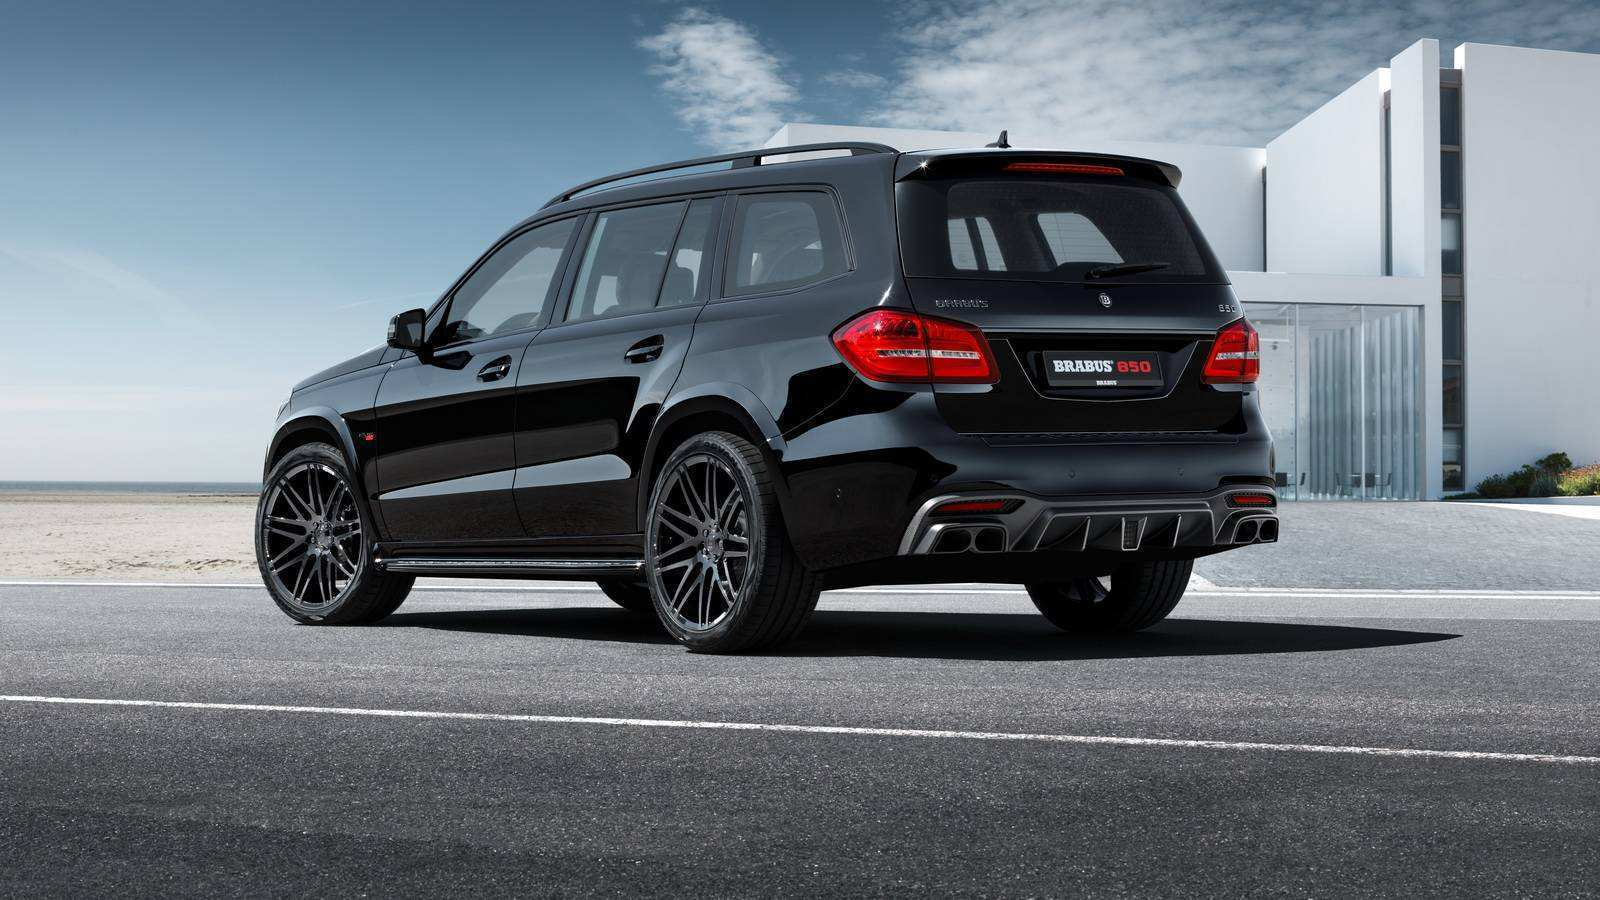 33 New Mercedes Brabus 2020 Price and Review for Mercedes Brabus 2020